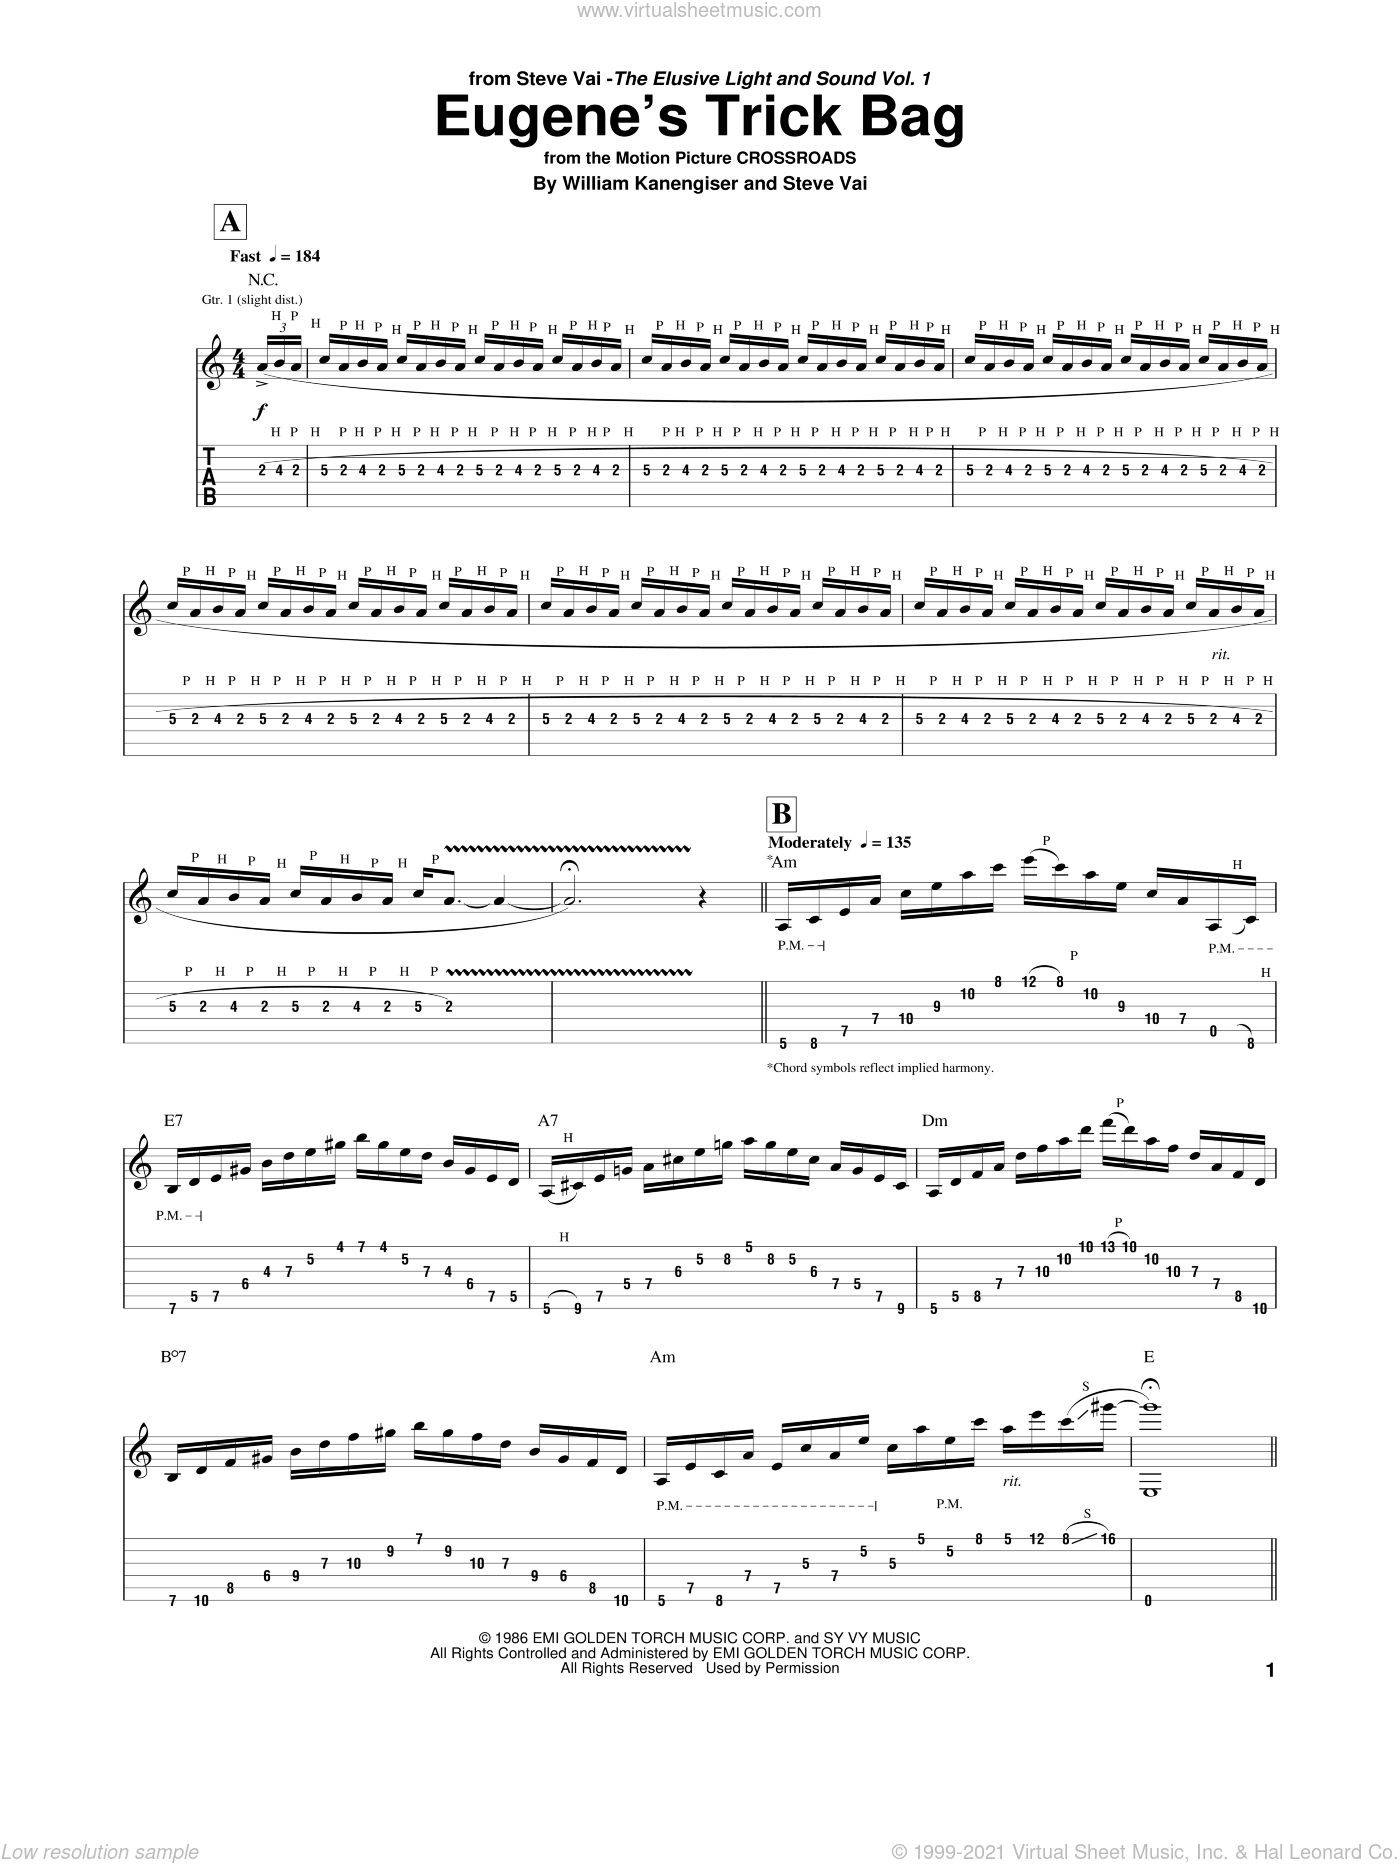 Eugene's Trick Bag sheet music for guitar (tablature) by Steve Vai. Score Image Preview.